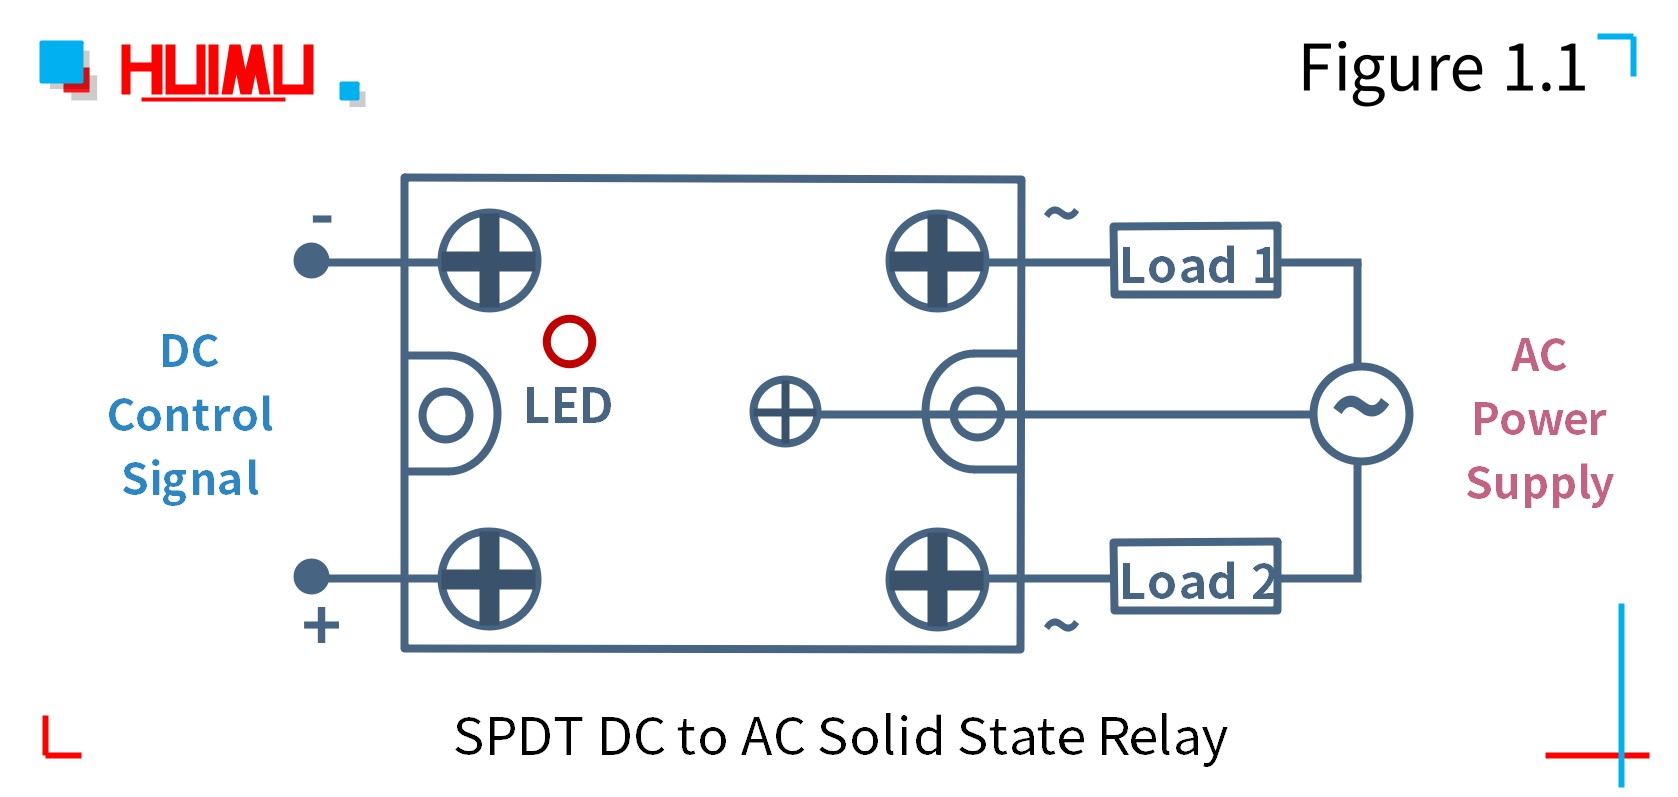 How to wire MGR mager MGR-1KB4840 spdt dc to ac solid state relay?